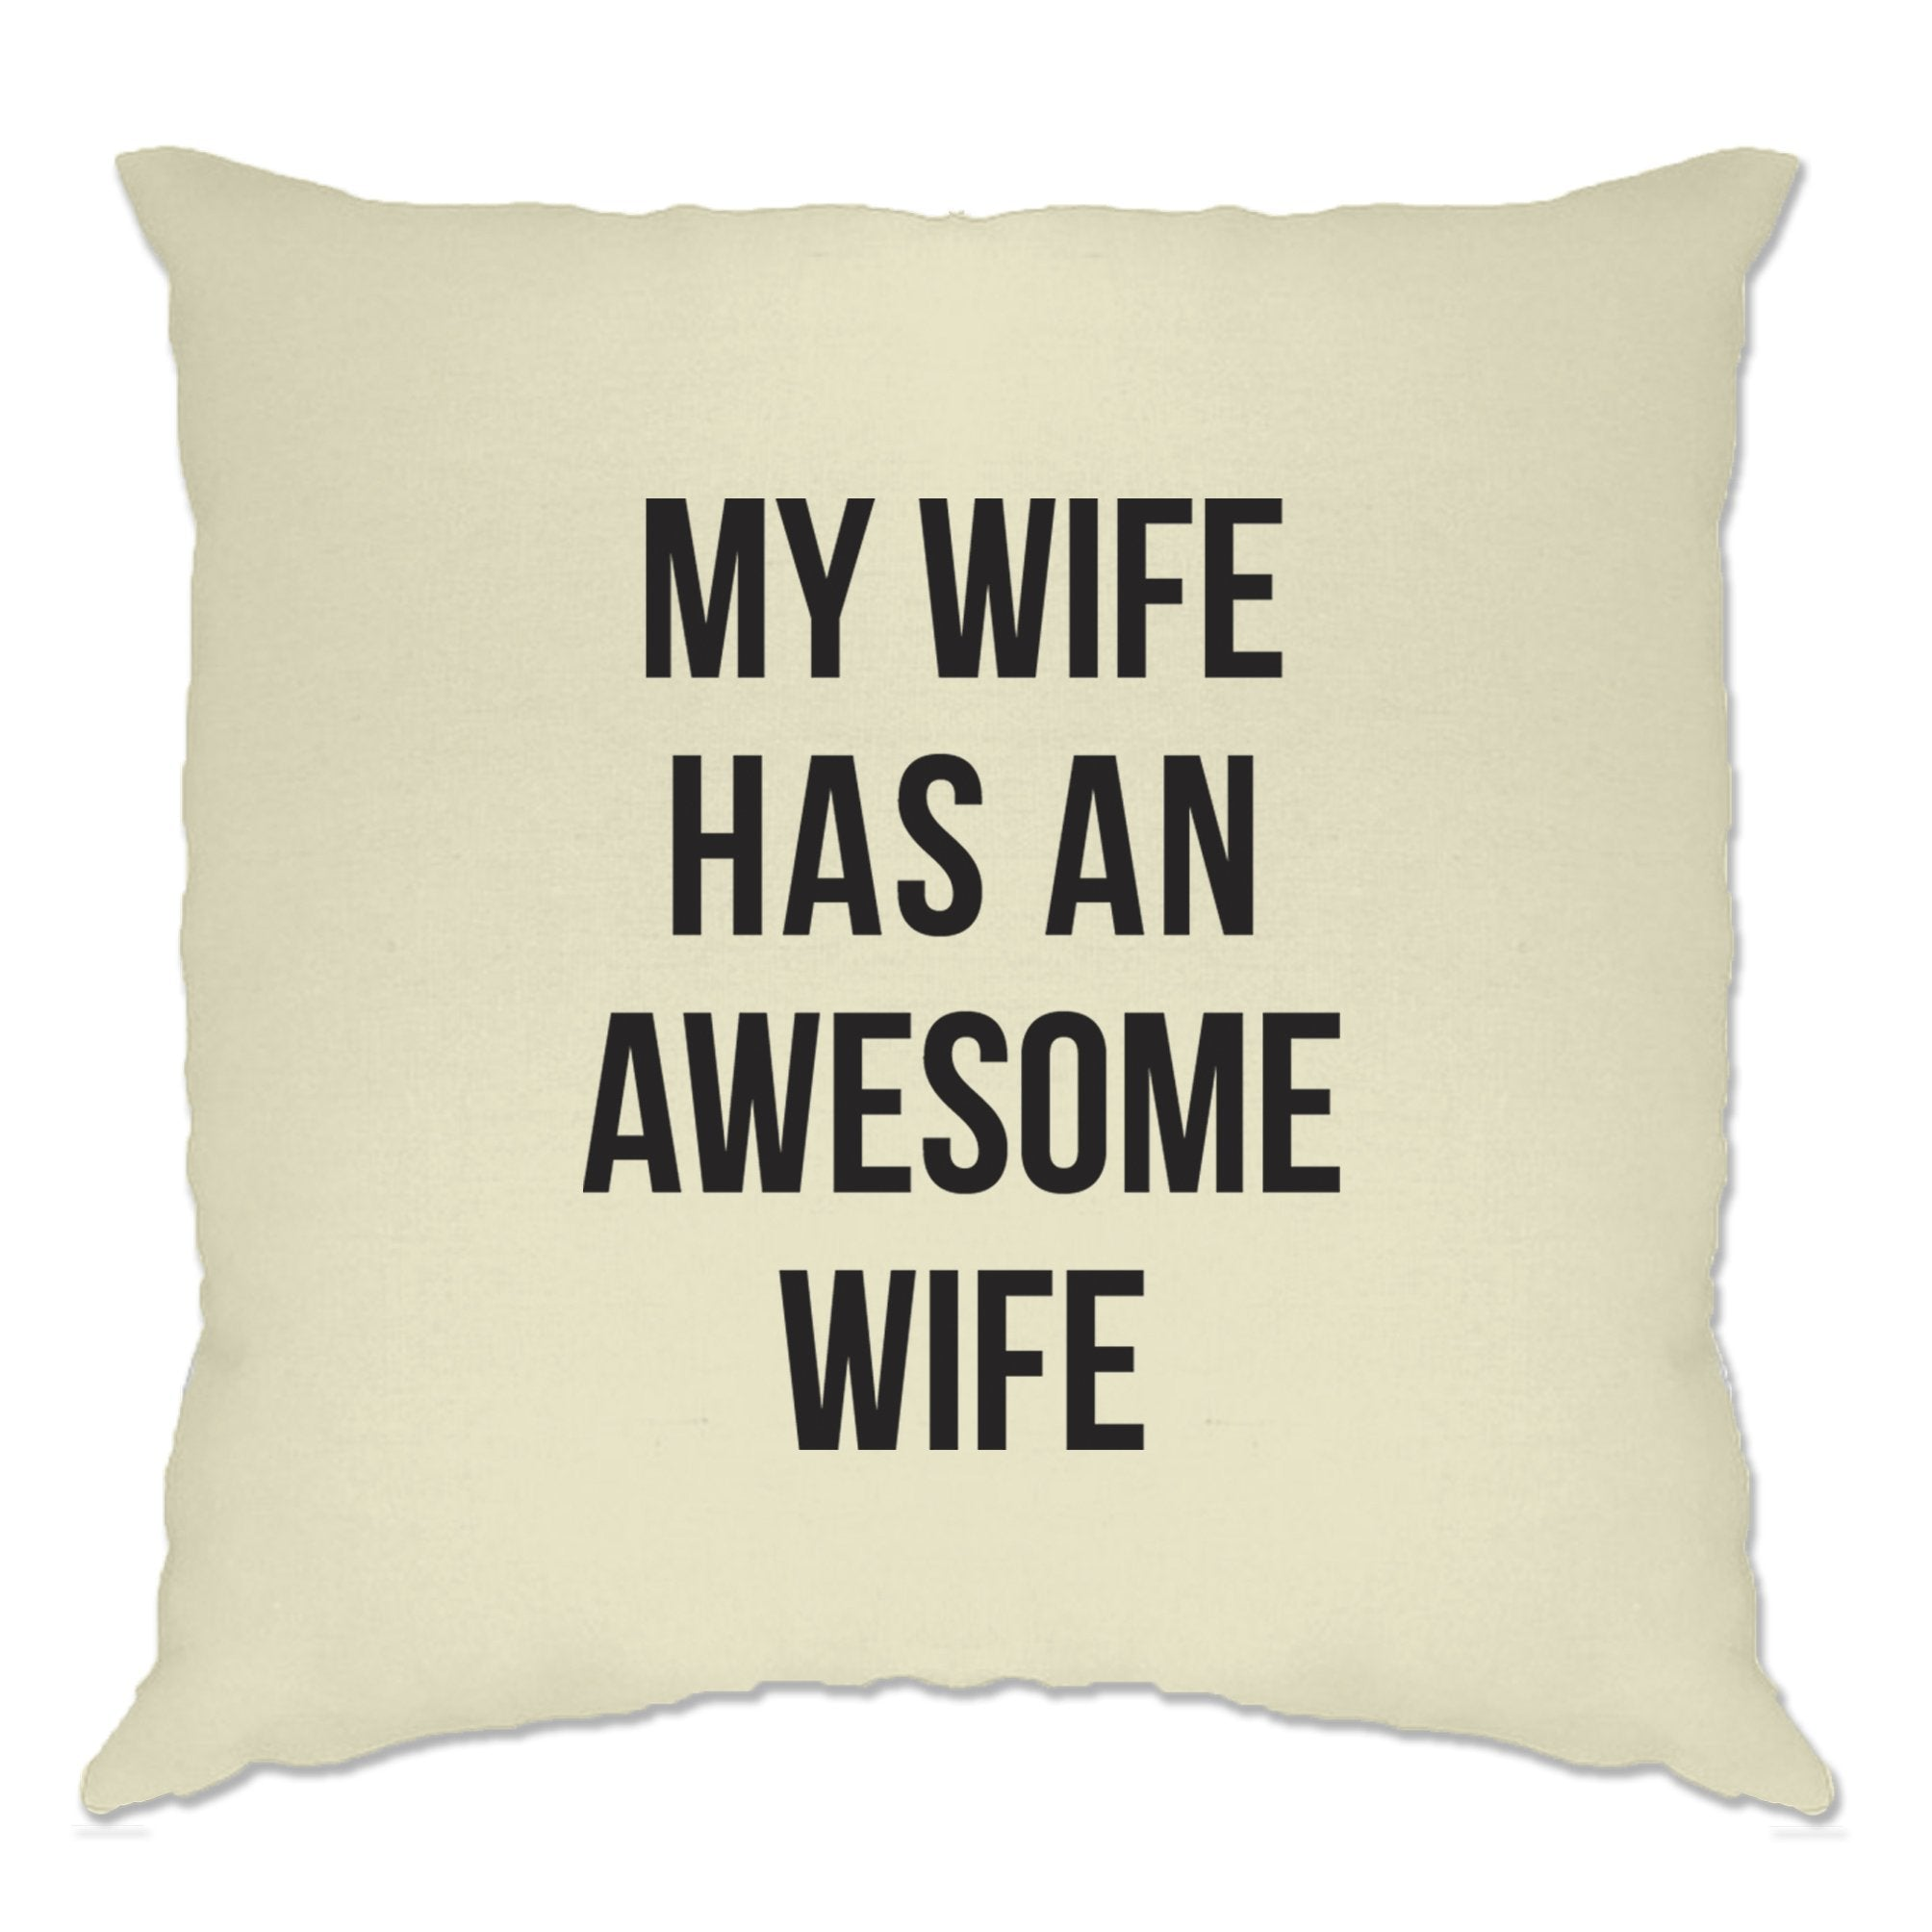 Joke Couples Cushion Cover My Wife Has An Awesome Wife